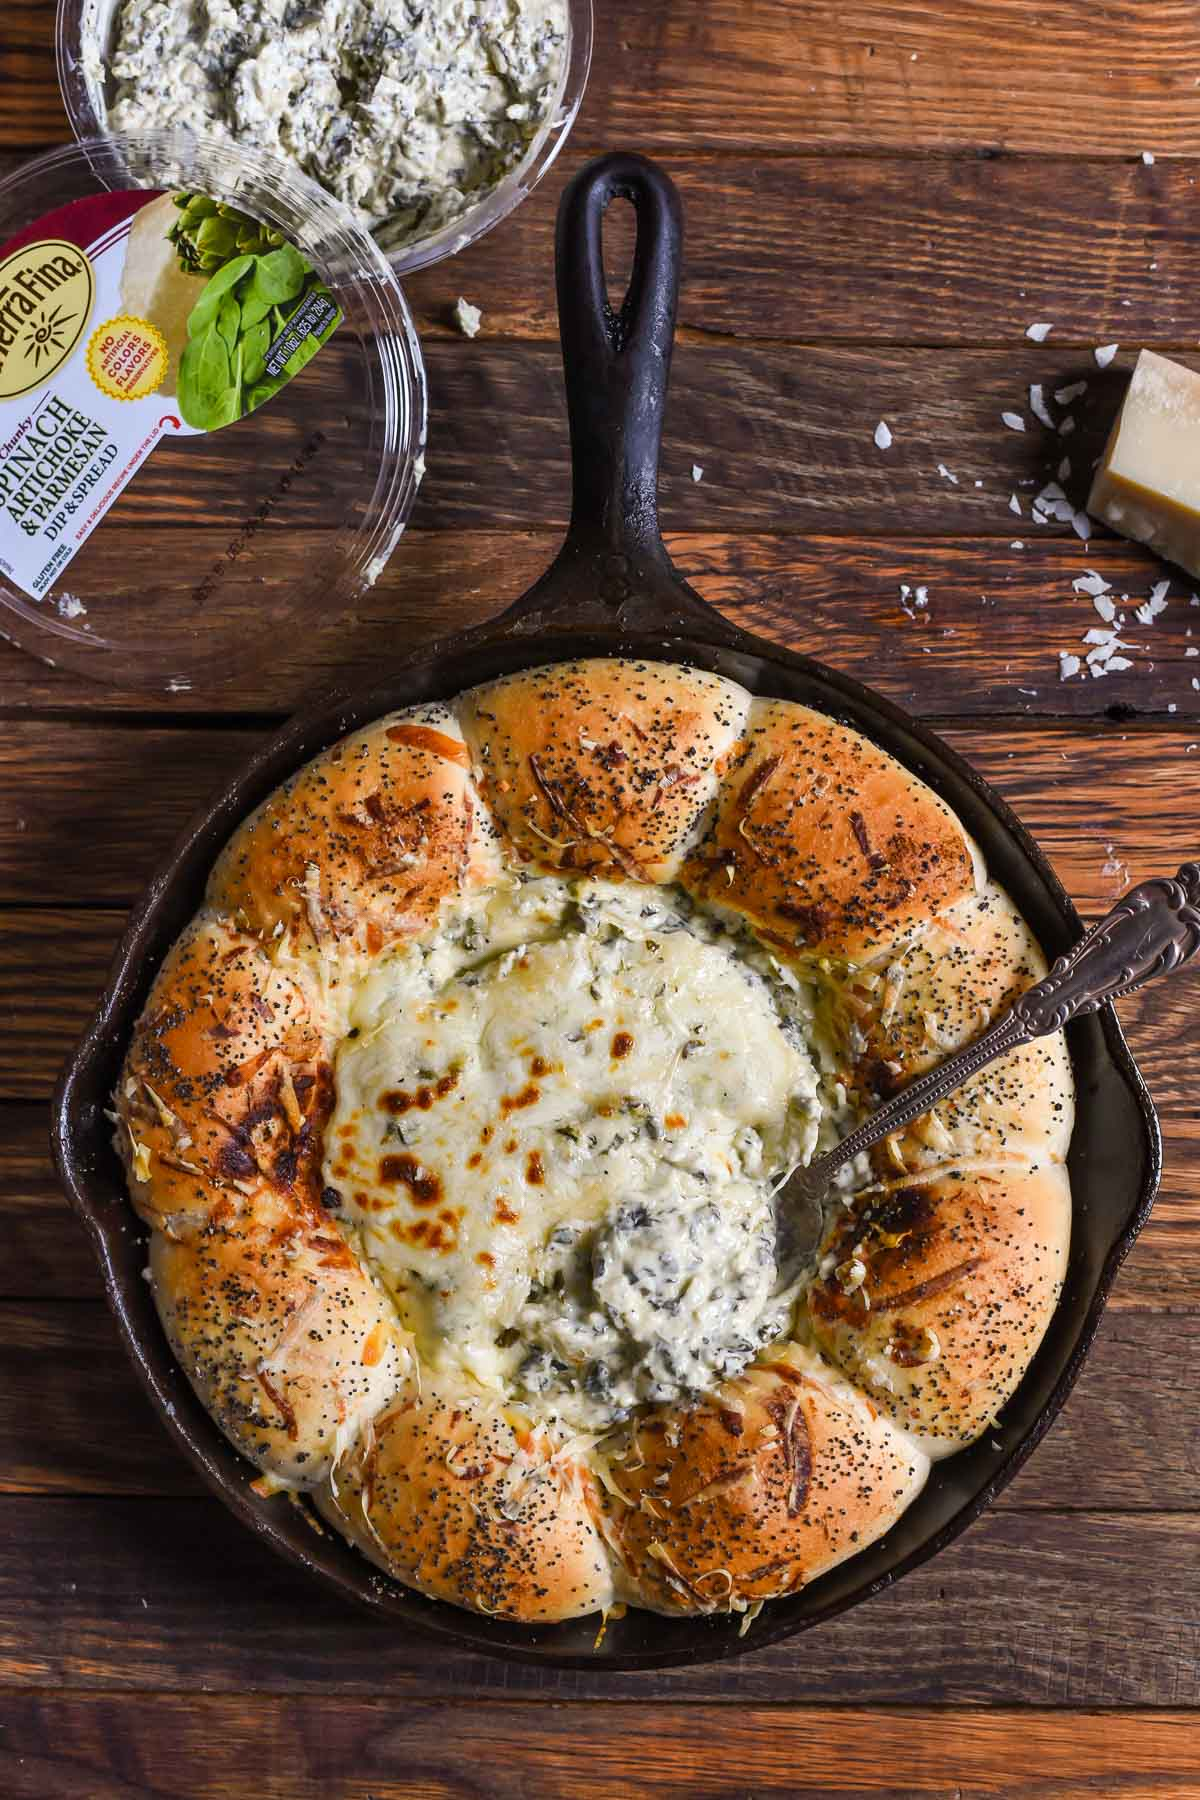 What could be better than fluffy bread and cheesy dip? This Skillet Bread and Spinach Artichoke Dip is so delicious and easy to make!